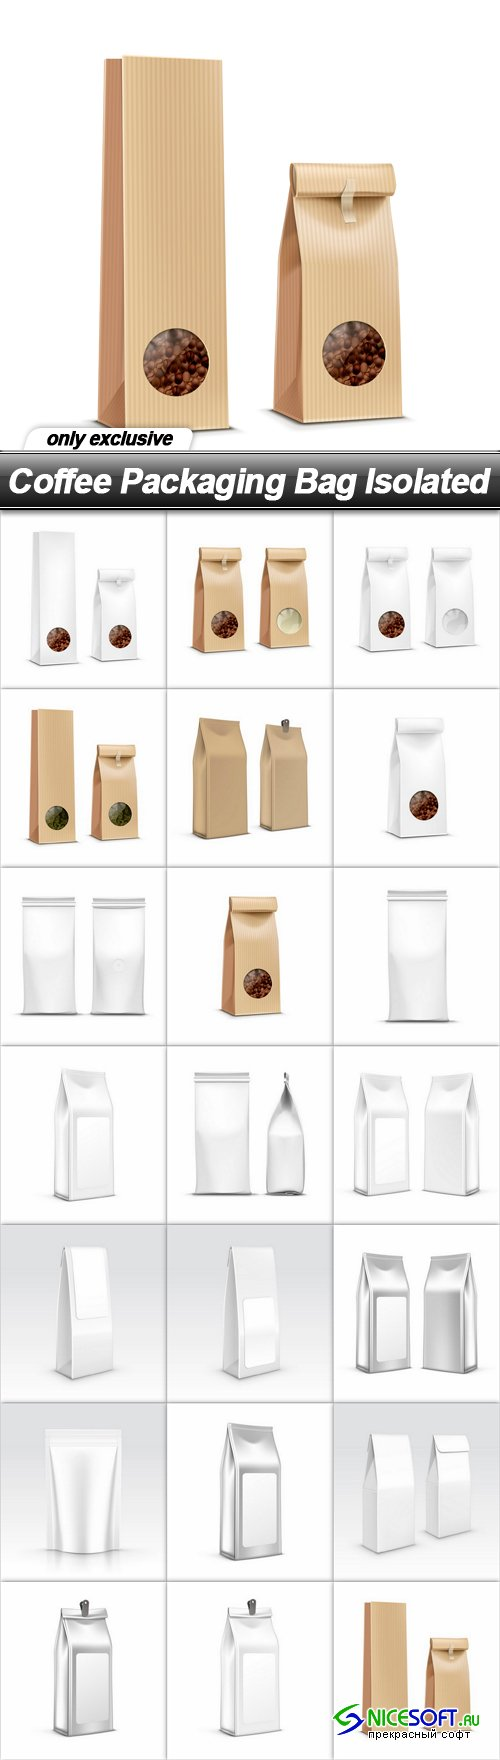 Coffee Packaging Bag Isolated